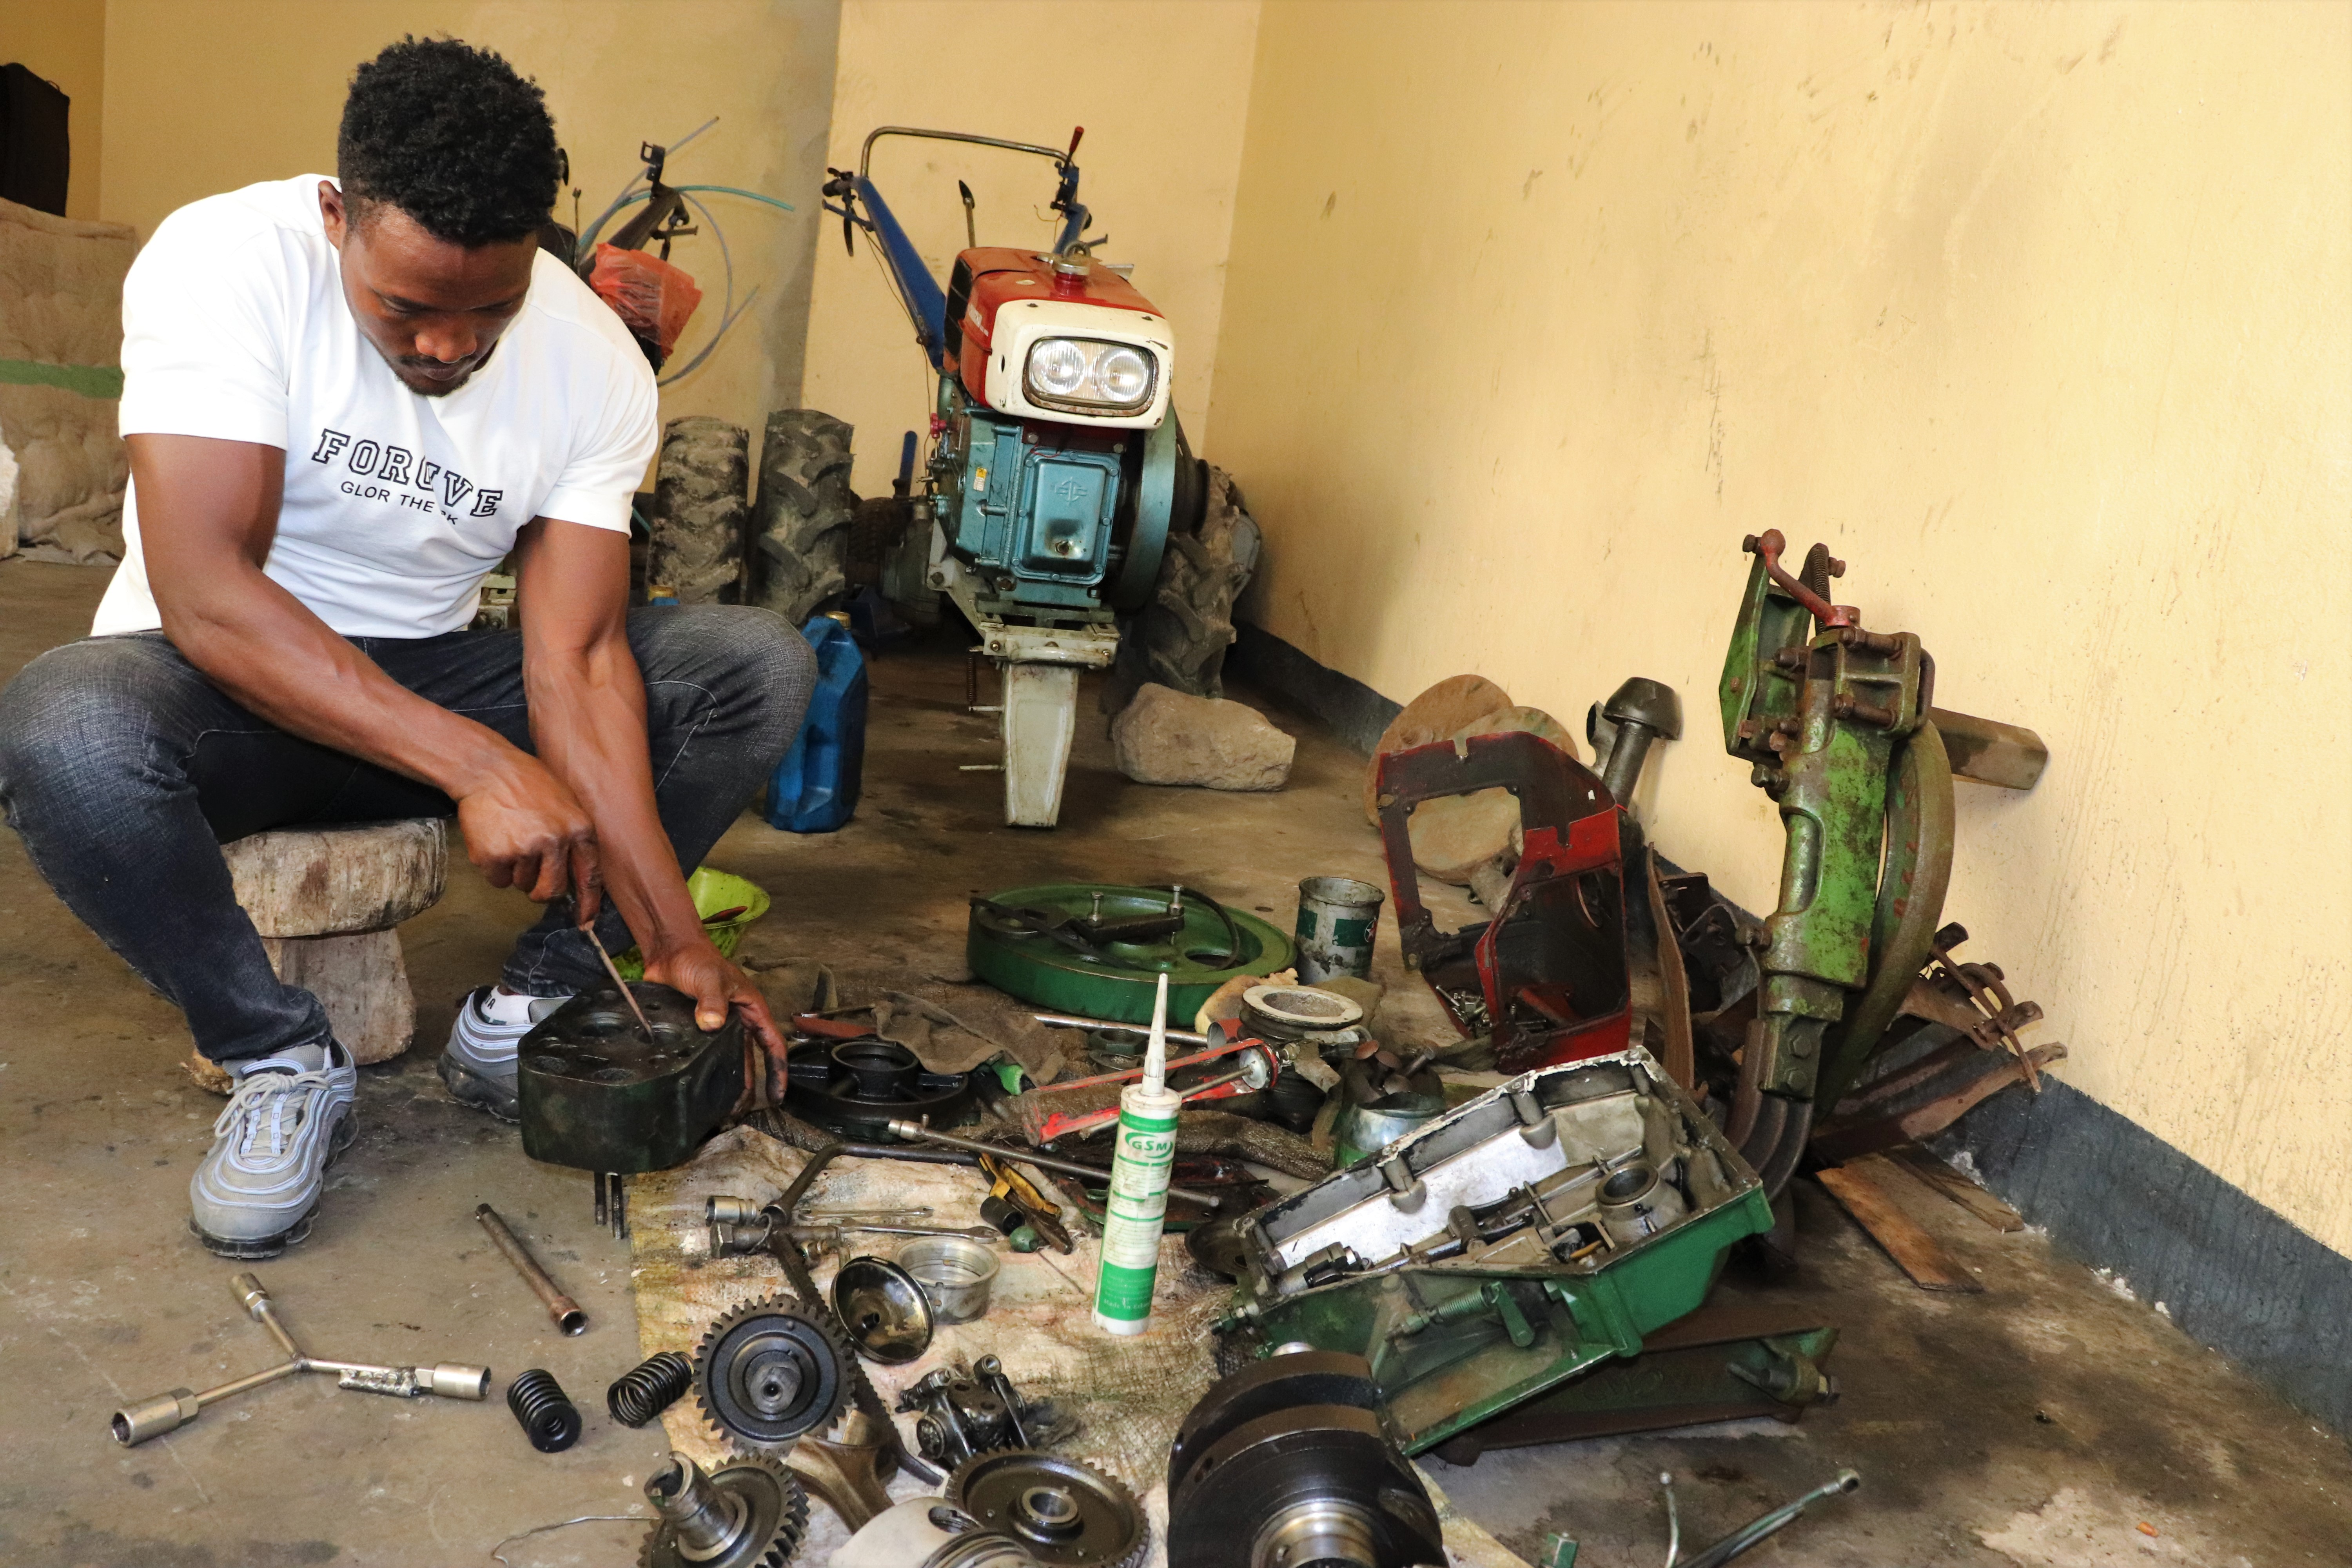 Beyene Chufamo (28) is a two-wheel tractor technology service provider based in Meki, Ethiopia. In 2016, with the support of CIMMYT, he started providing repair and maintenance services to service providers in different areas. (Photo: Ephrem Tadesse/CIMMYT)